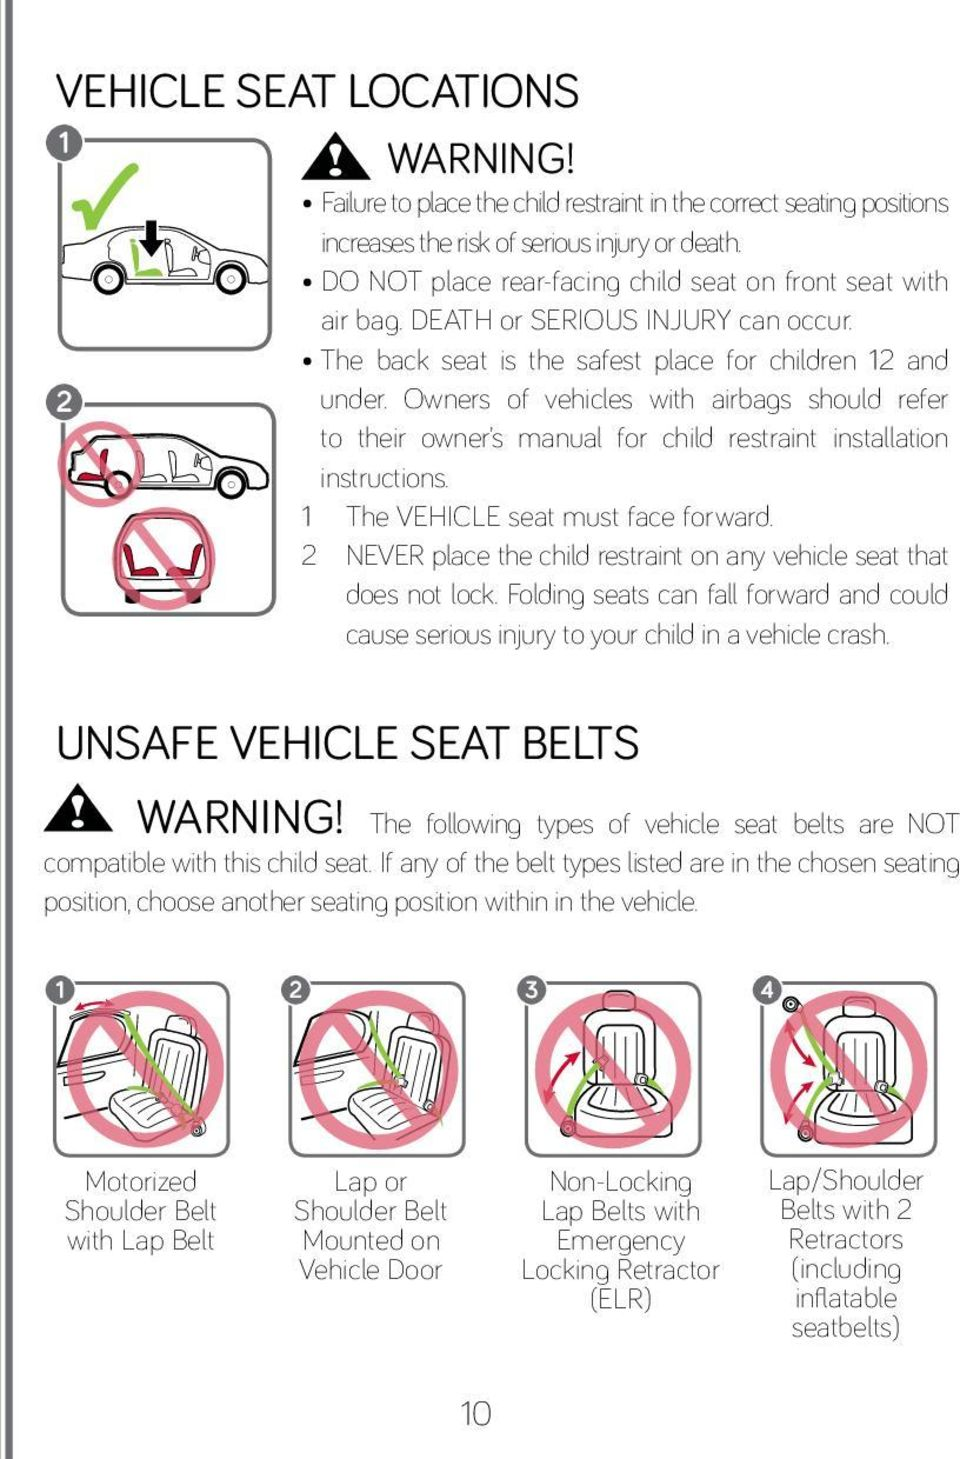 Owners of vehicles with airbags should refer to their owner s manual for child restraint installation instructions. The VEHICLE seat must face forward.